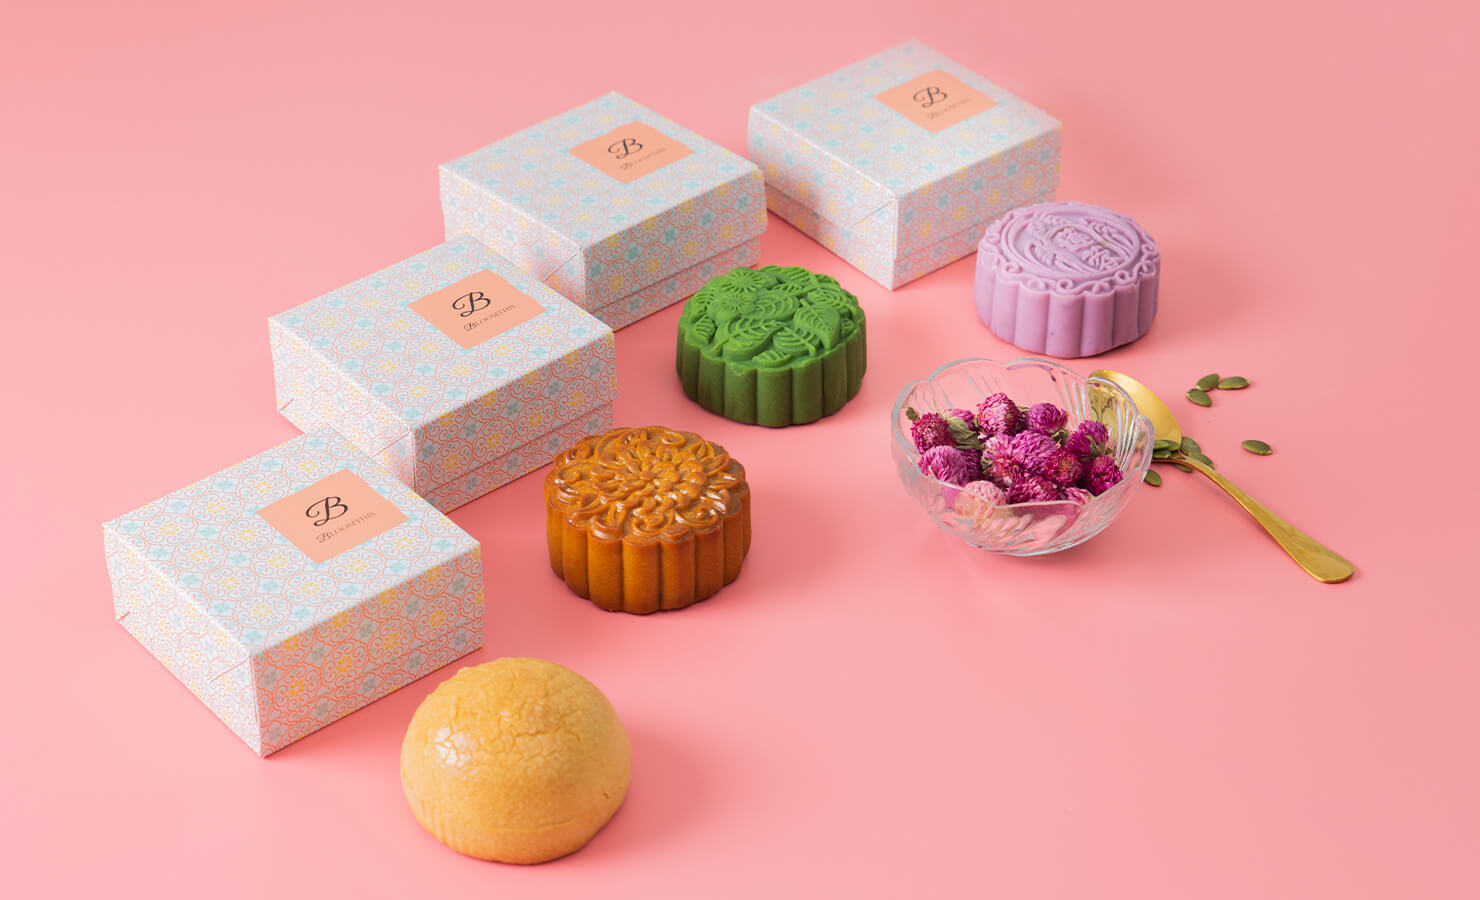 bloomthis-mid-autumn-festival-activities-guide-2021-08-colourful-mooncakes